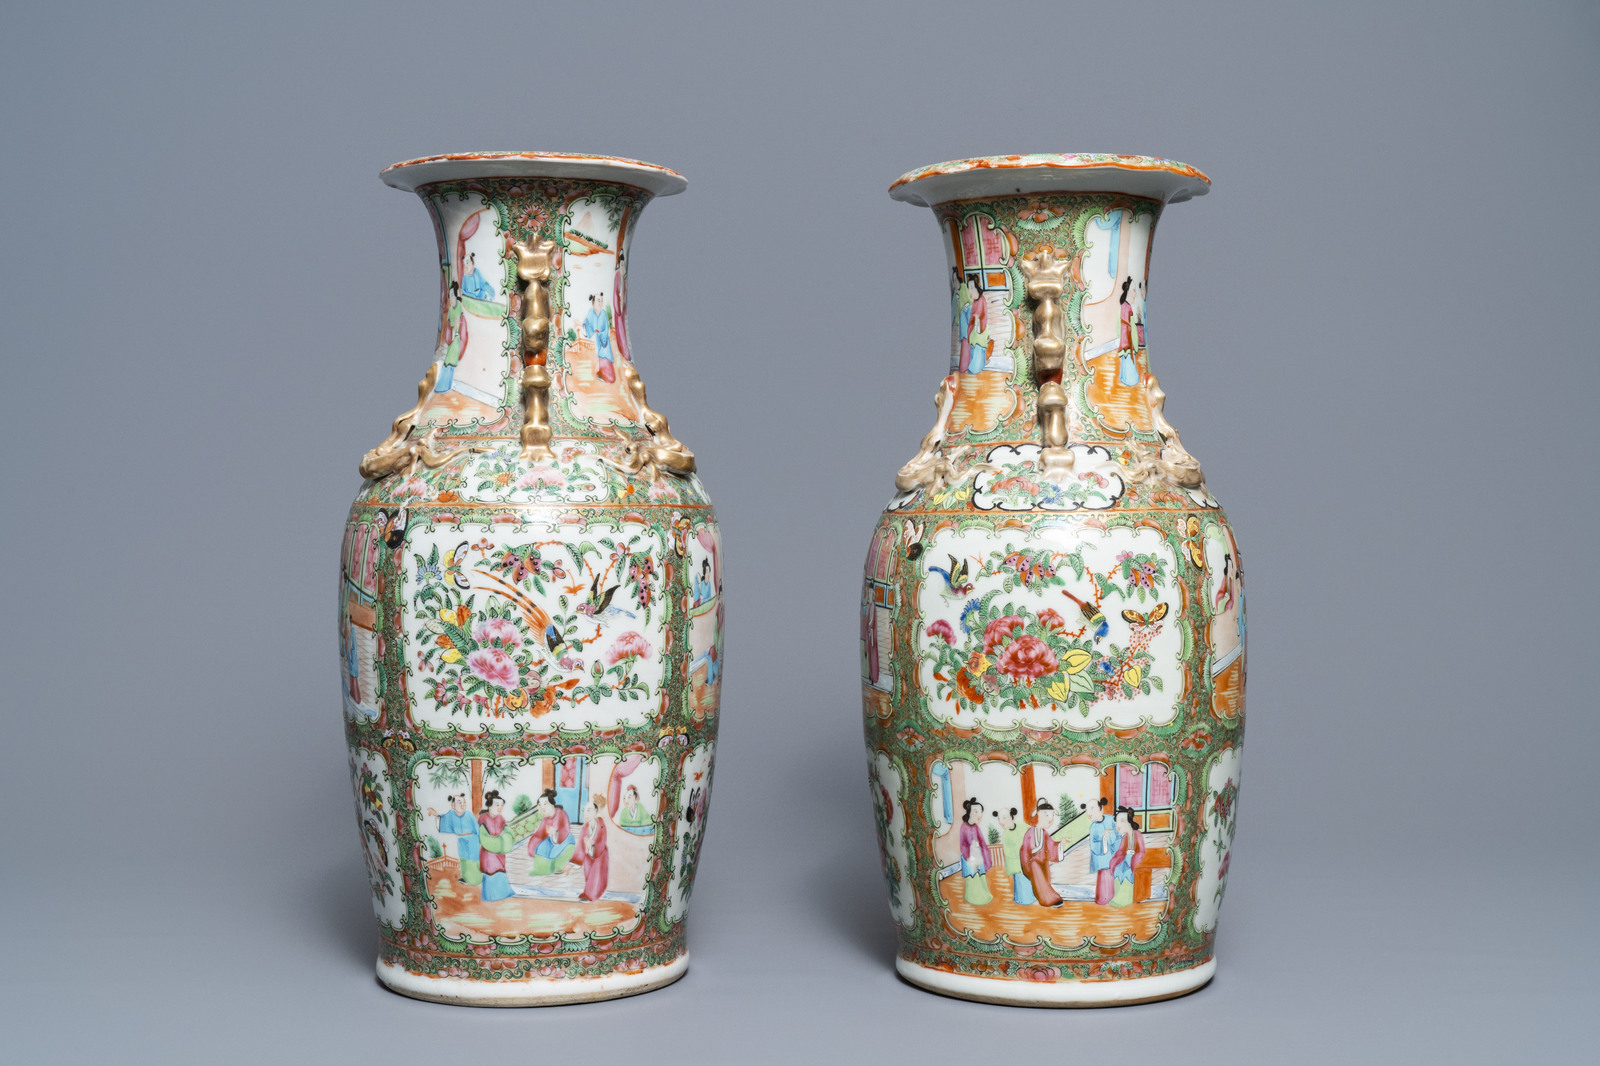 Lot 53 - Three Chinese Canton famille rose vases, 19th C.